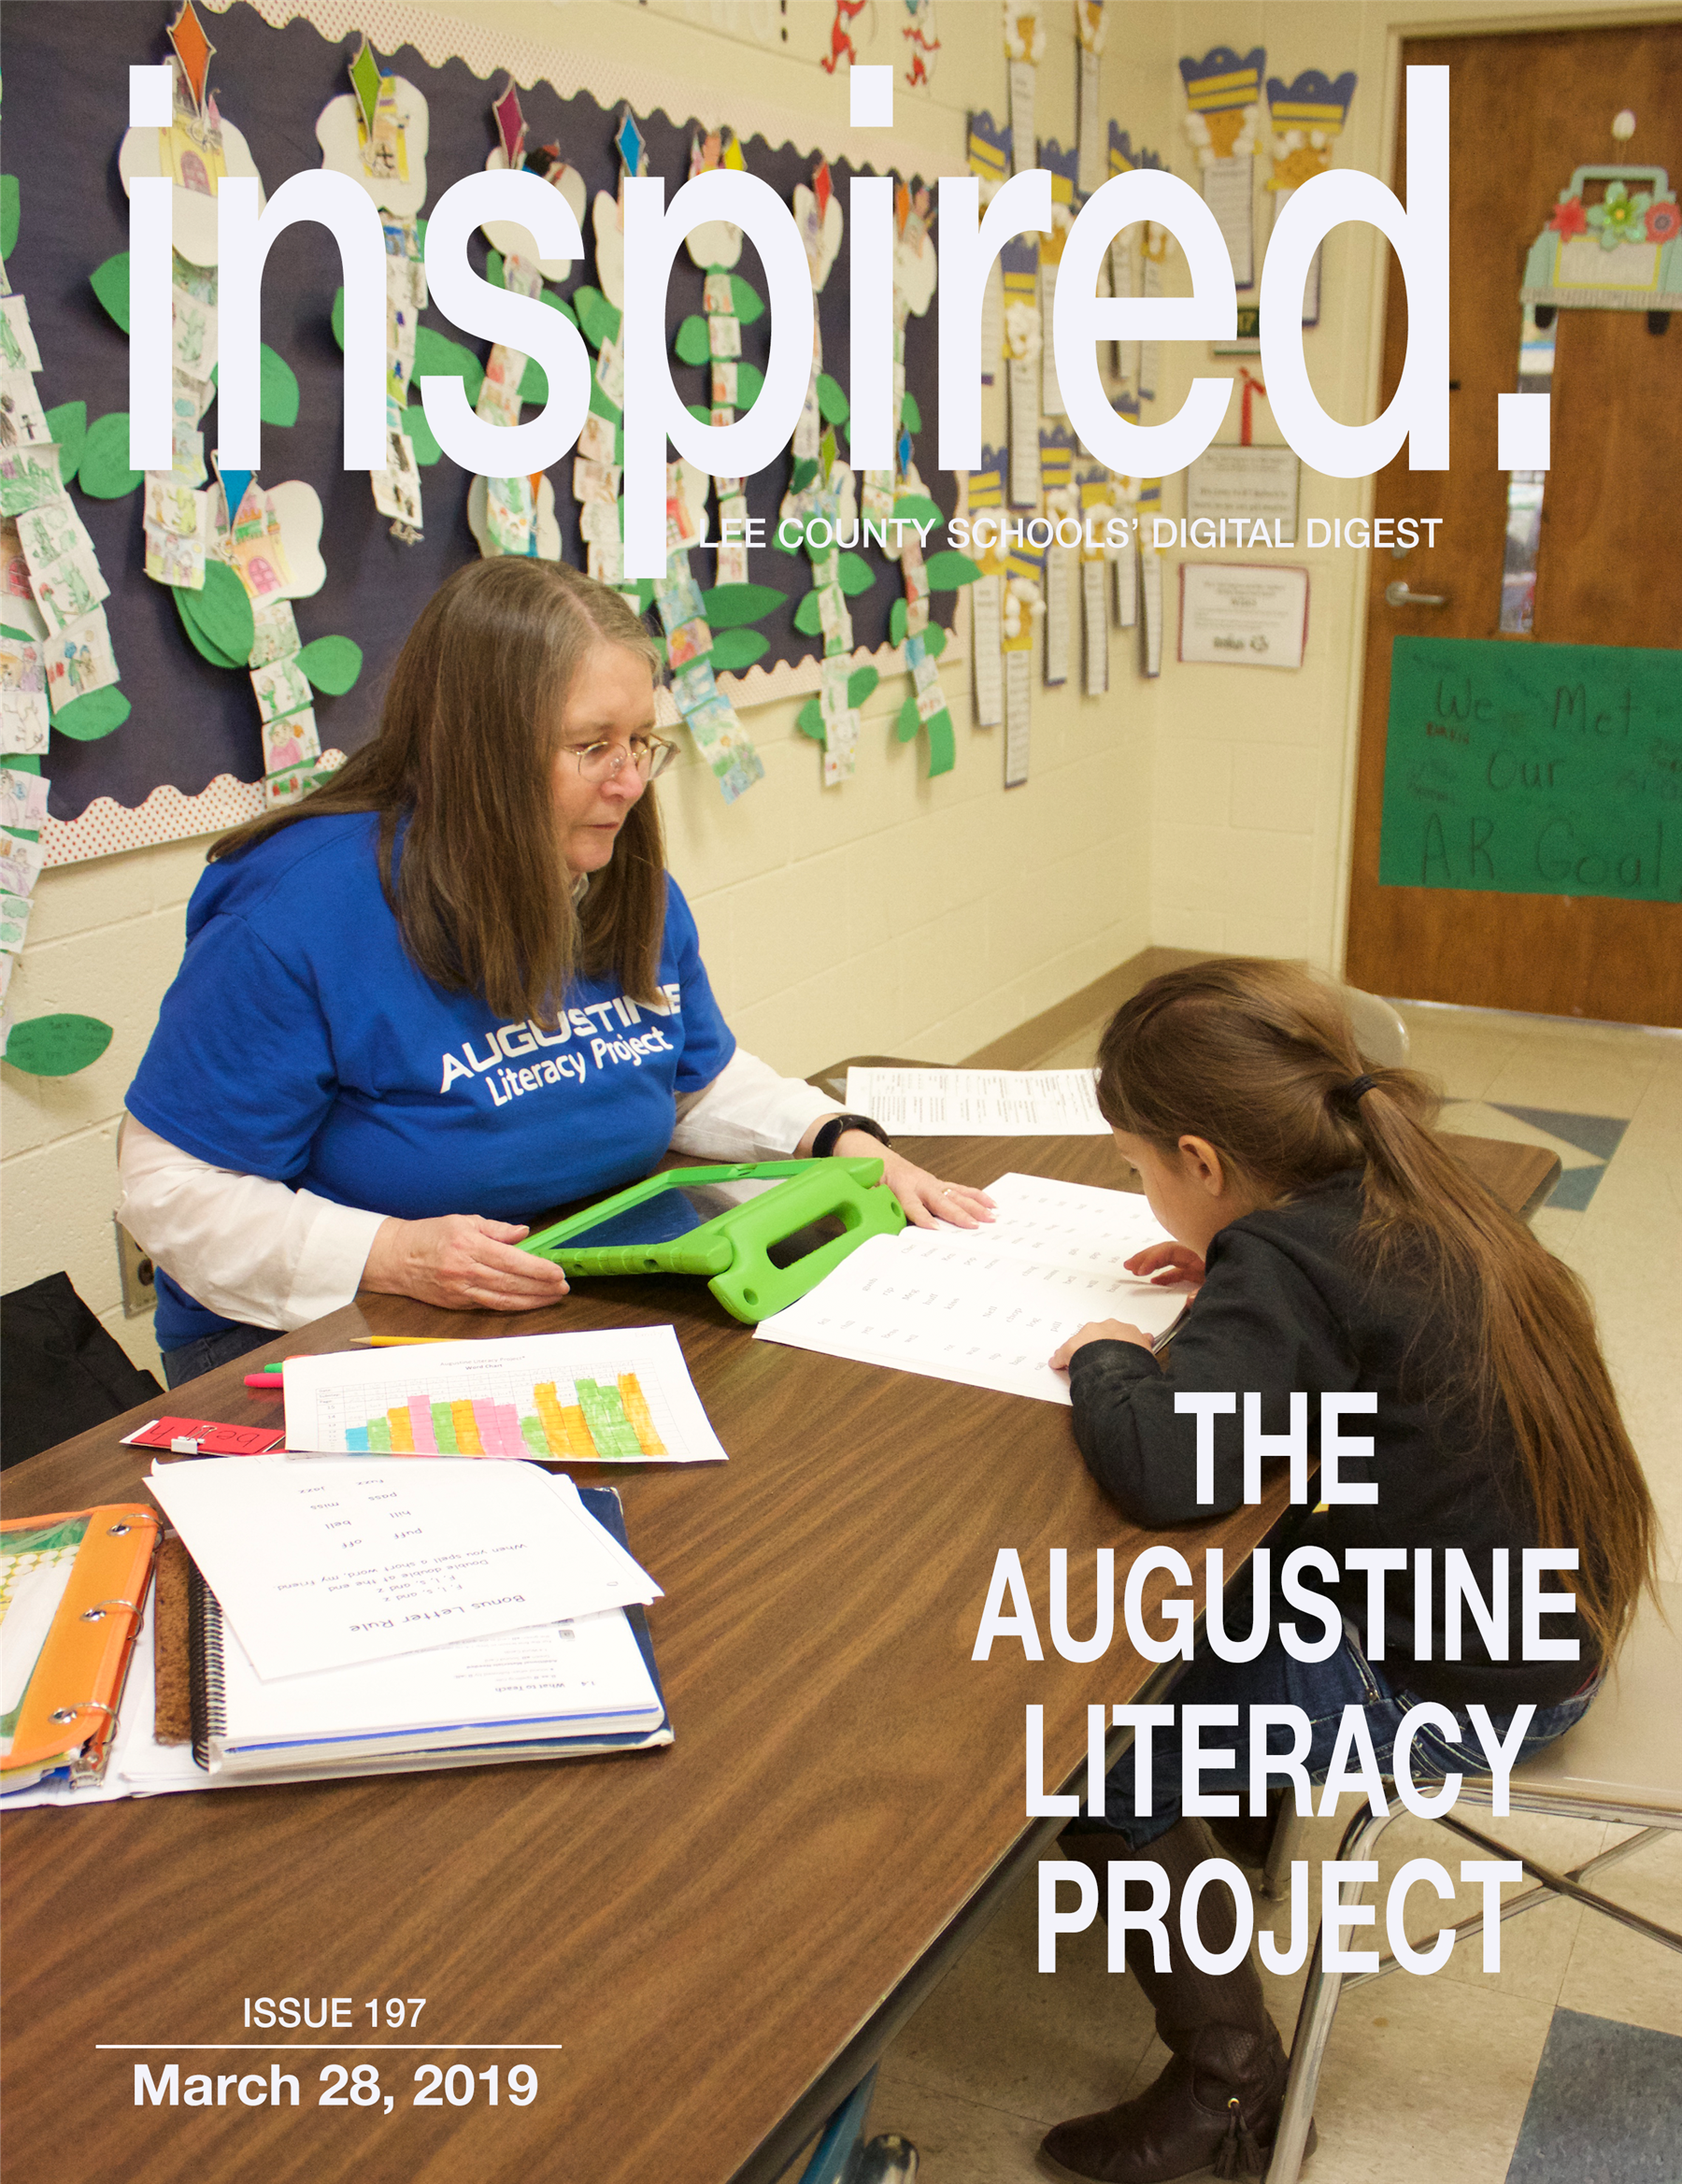 INSPIRED. The Augustine Literacy Project